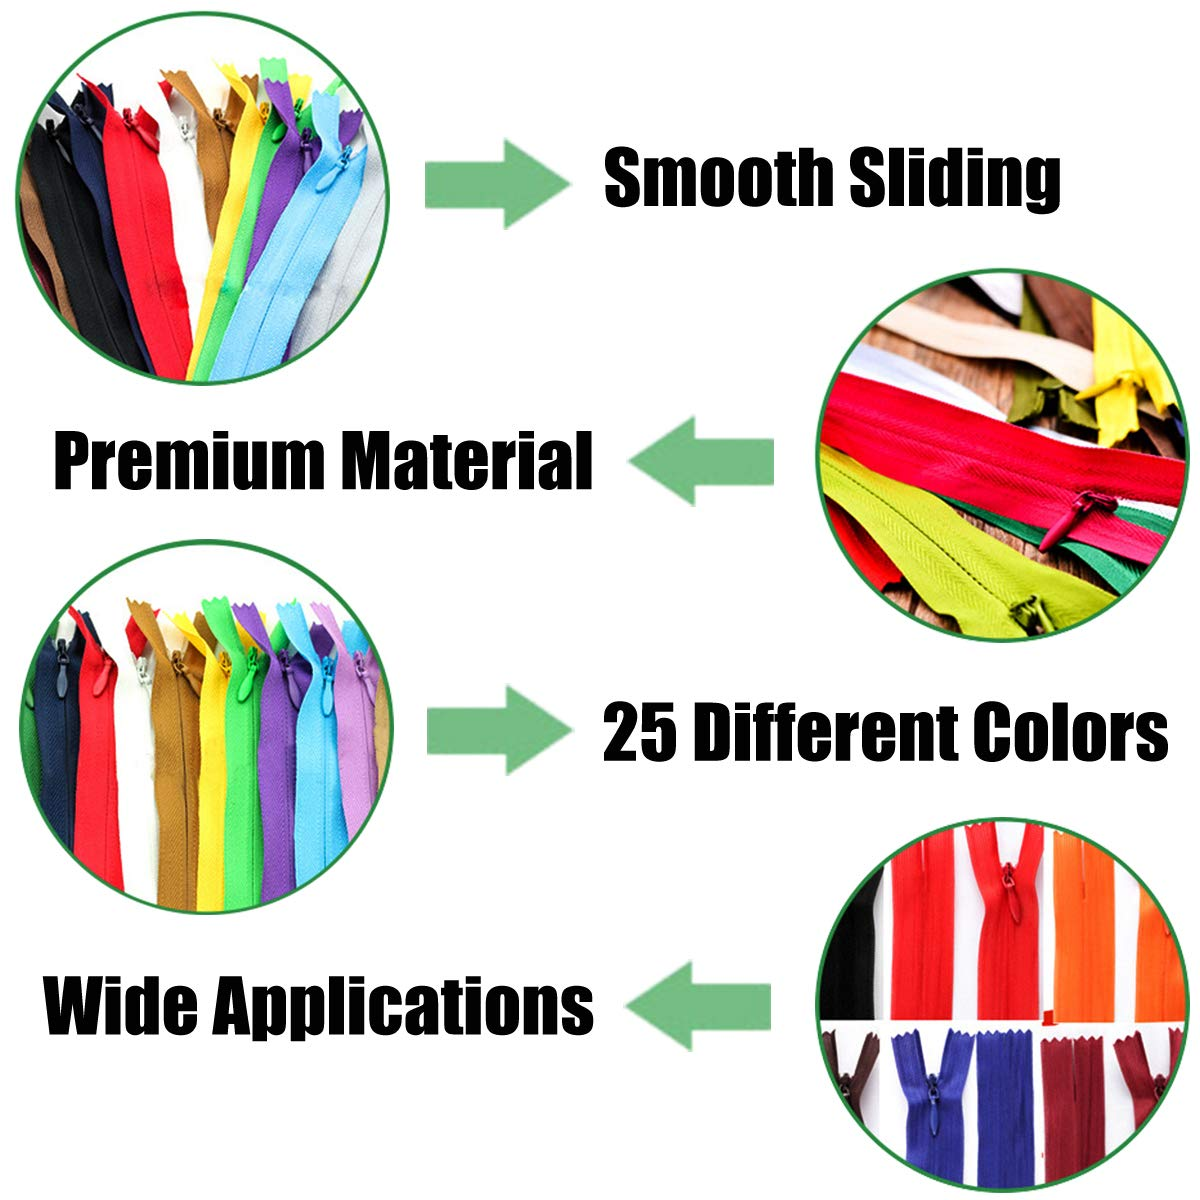 Closed End for Tailor Sewing Crafts 25 Colors Nylon Zippers 14inch in 25 Colors LONG7INES 50 Pieces Nylon Coil Zippers Bulk